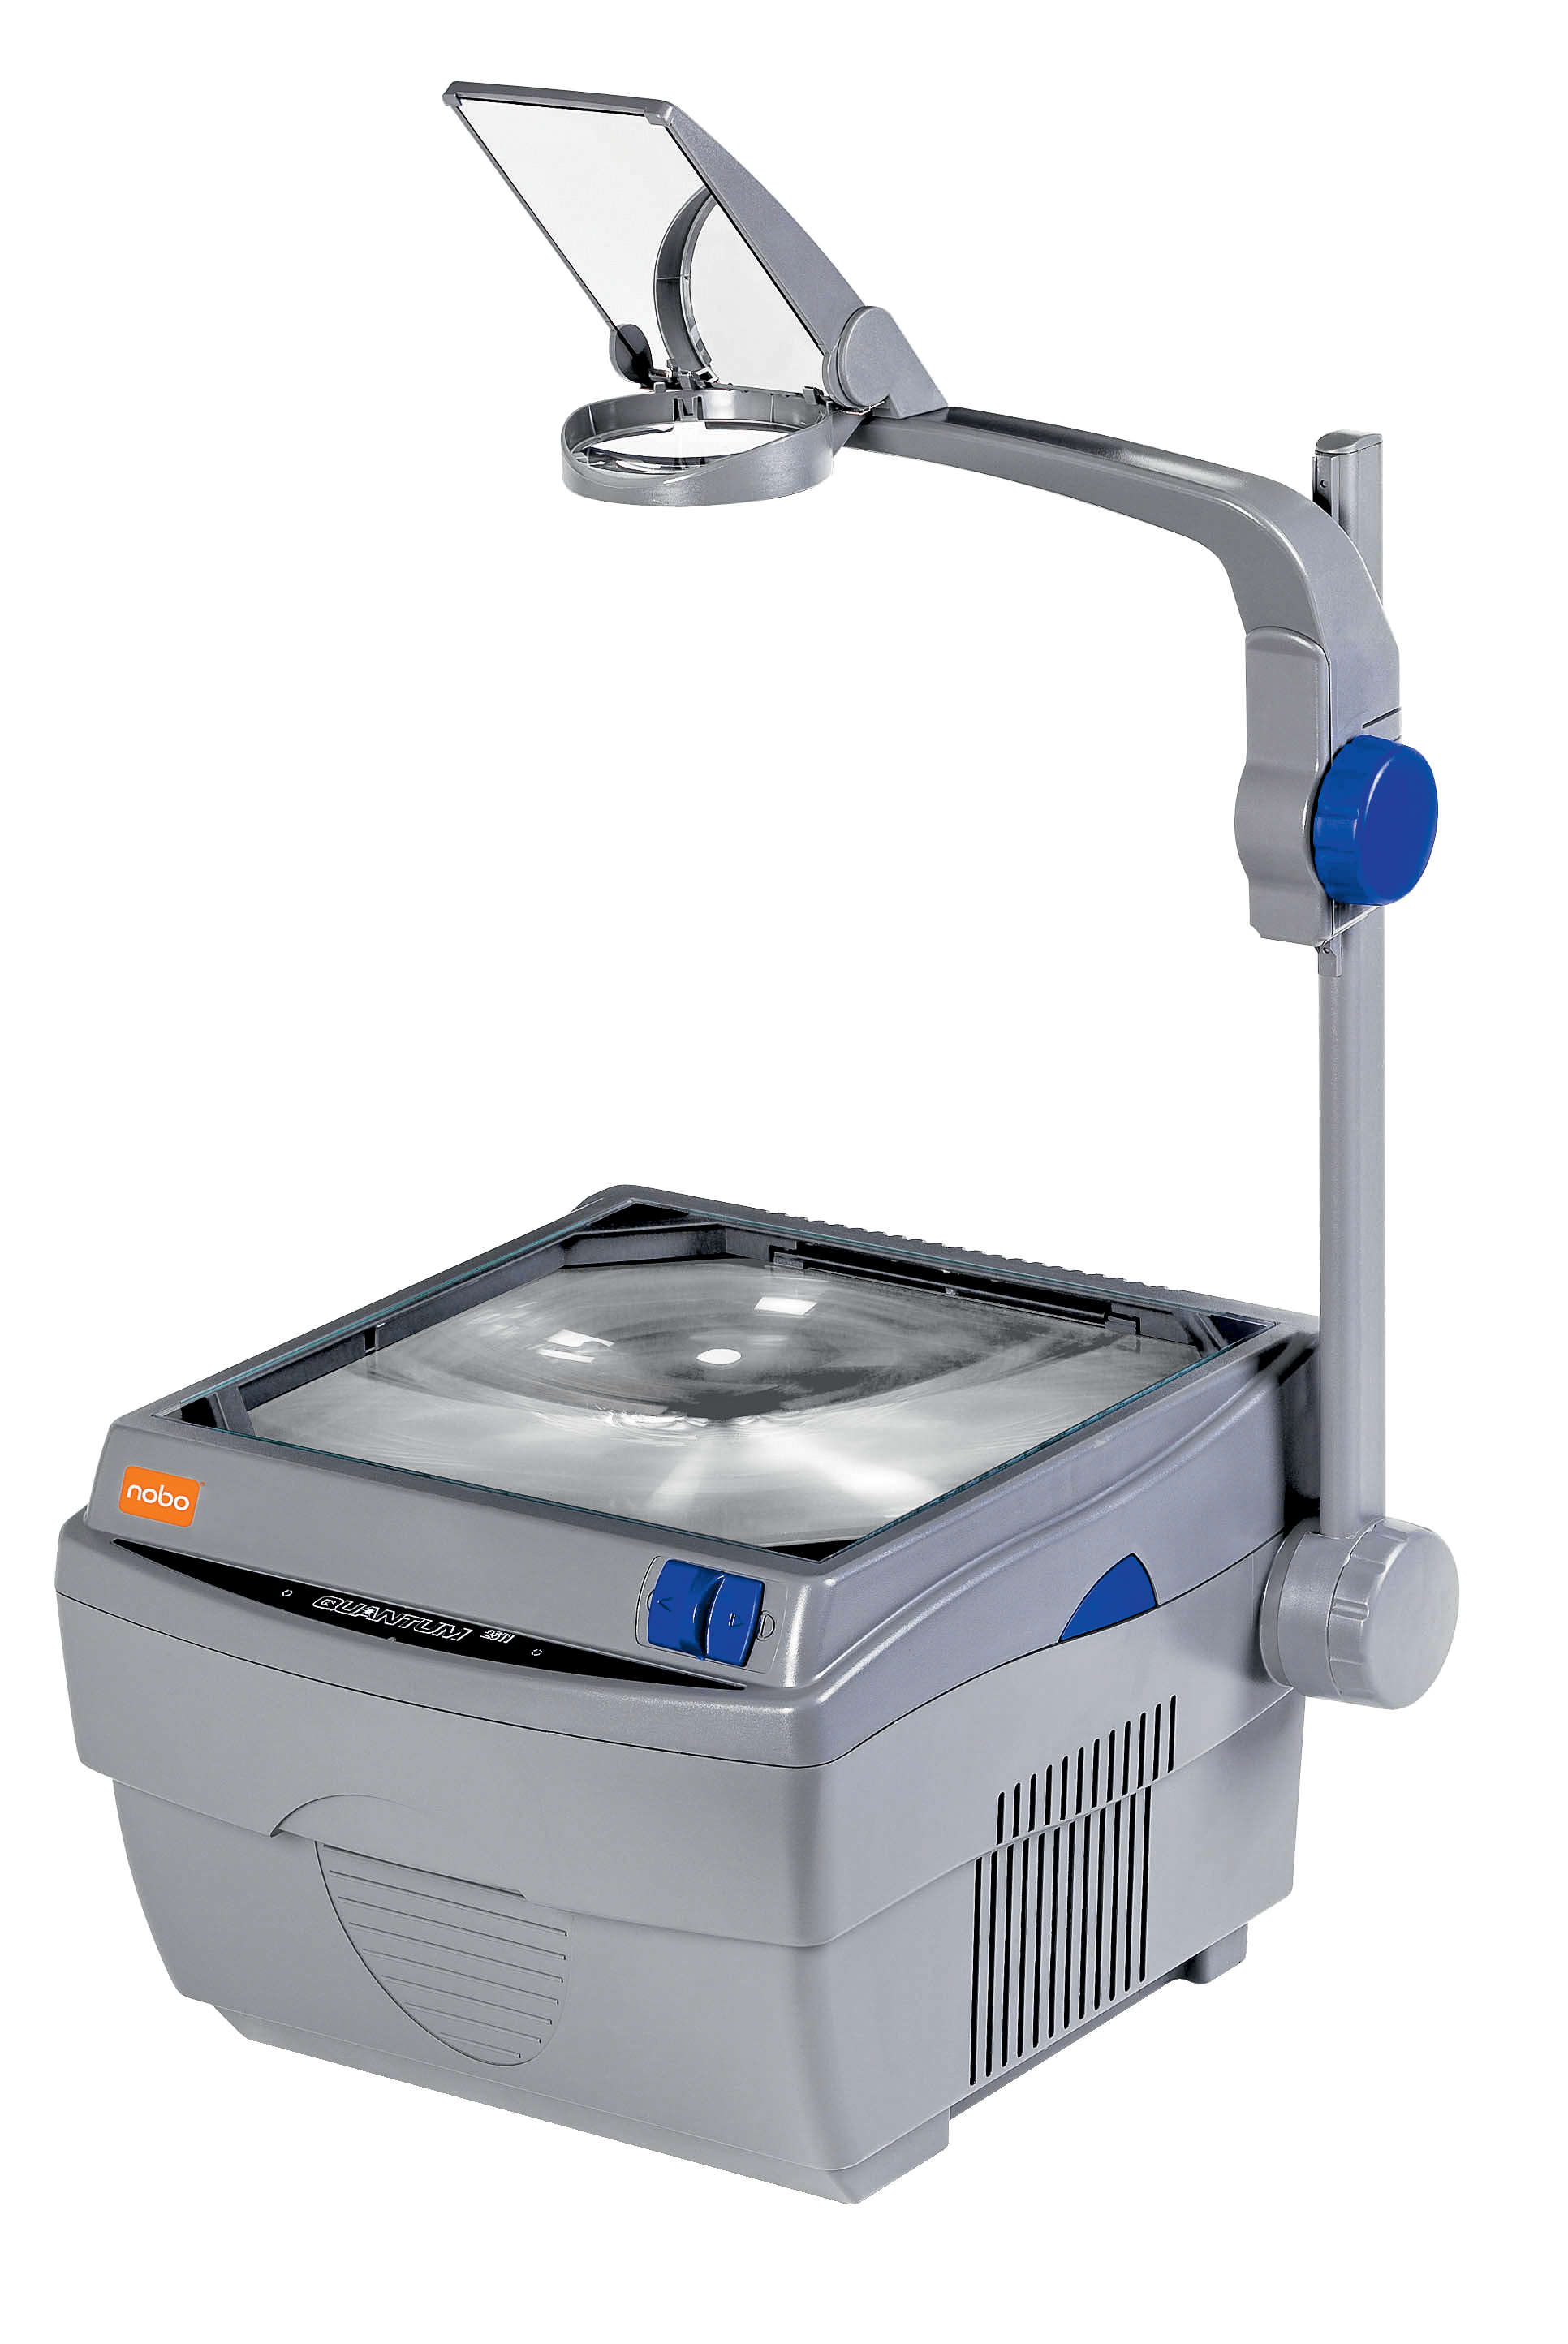 Image for Nobo Quantum 2521 Overhead Projector 2 Lamps Single Lens 2200 ANSI Lumens 8.15kg Ref 1900563